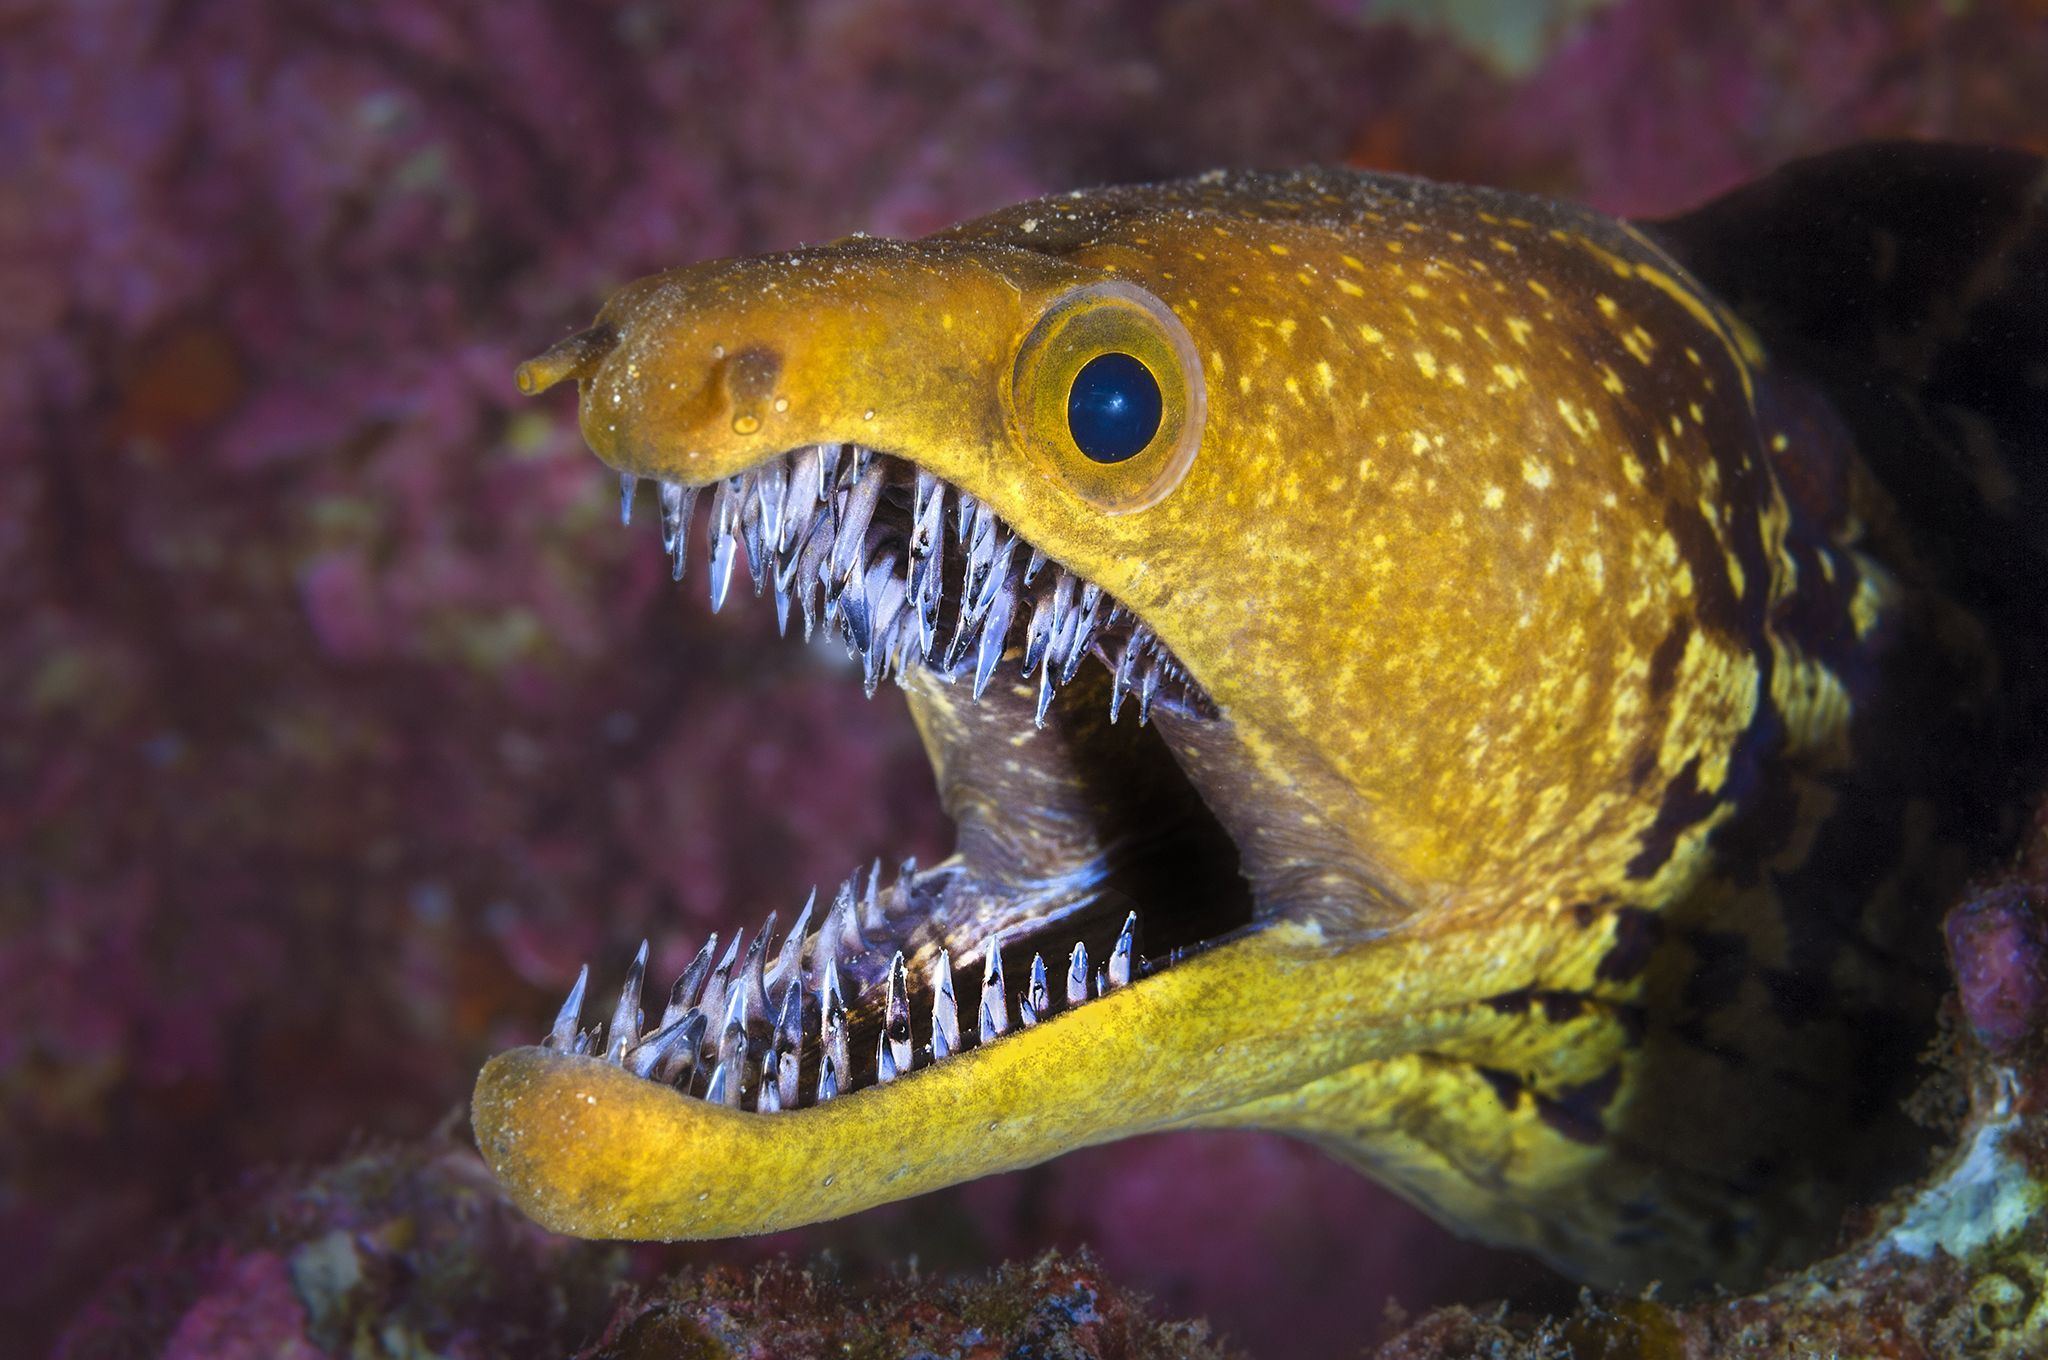 Fangtooth moray eel (Enchelycore anatina) with mouth open, Grand Canaria, Canary Islands, Spain. East Atlantic Ocean.